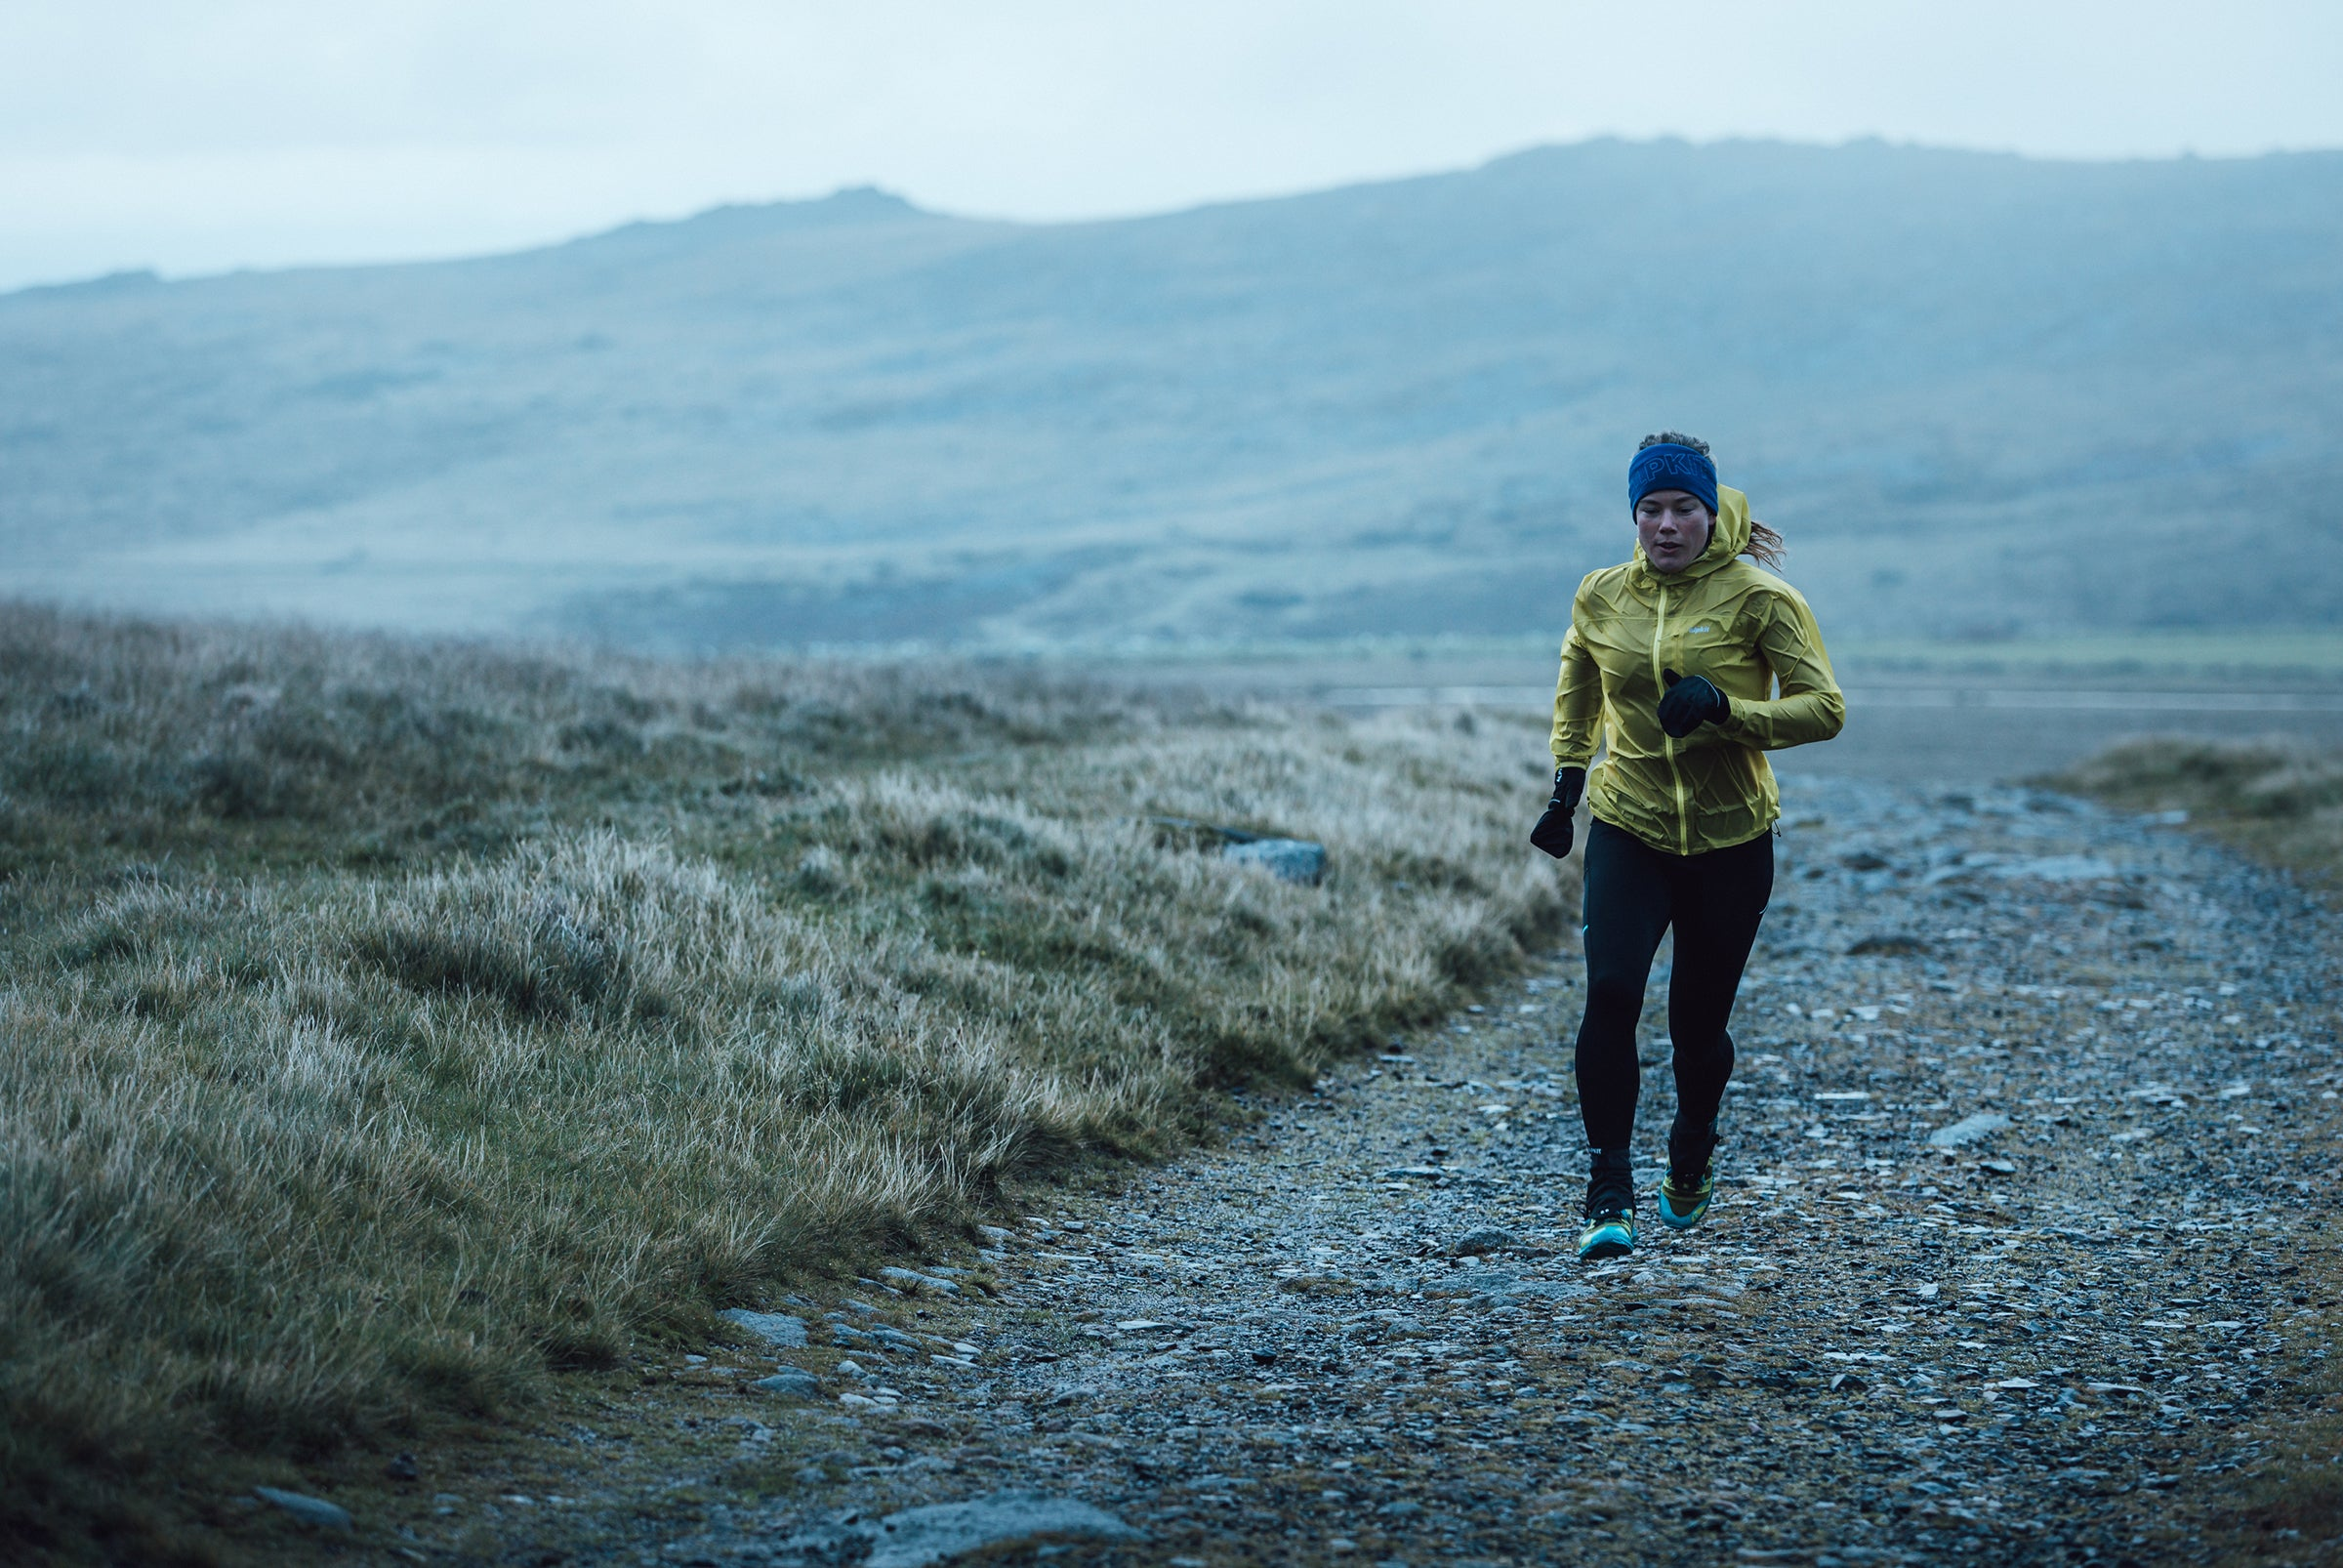 A woman in a yellow jacket running on a gravel path with hills in the background